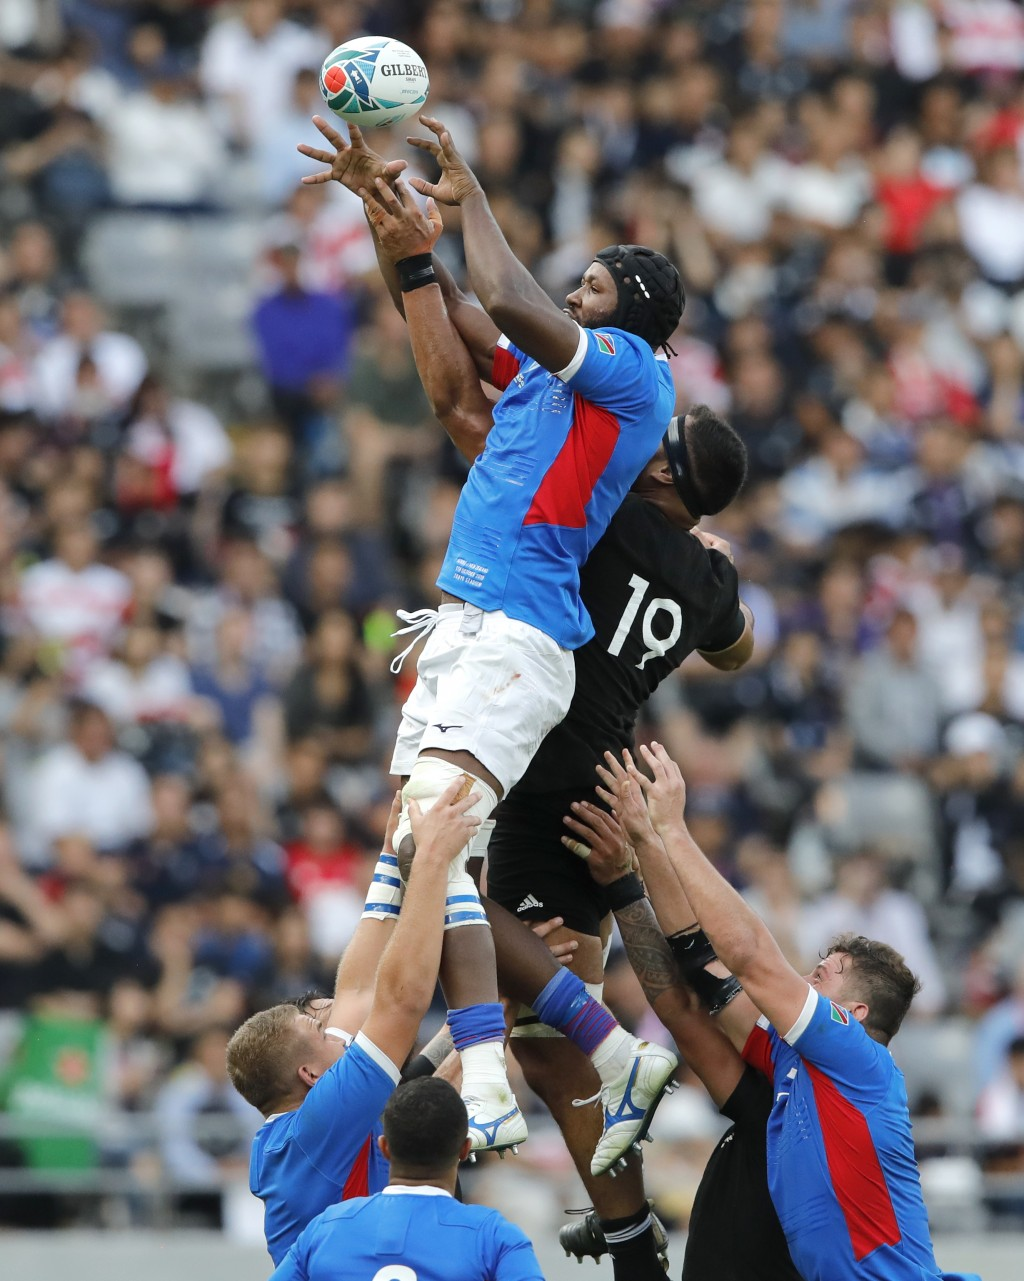 Namibia's Tjiuee Uanivi wins the lineout ball ahead of New Zealand's Patrick Tuipulotu during the Rugby World Cup Pool B game at Tokyo Stadium between...